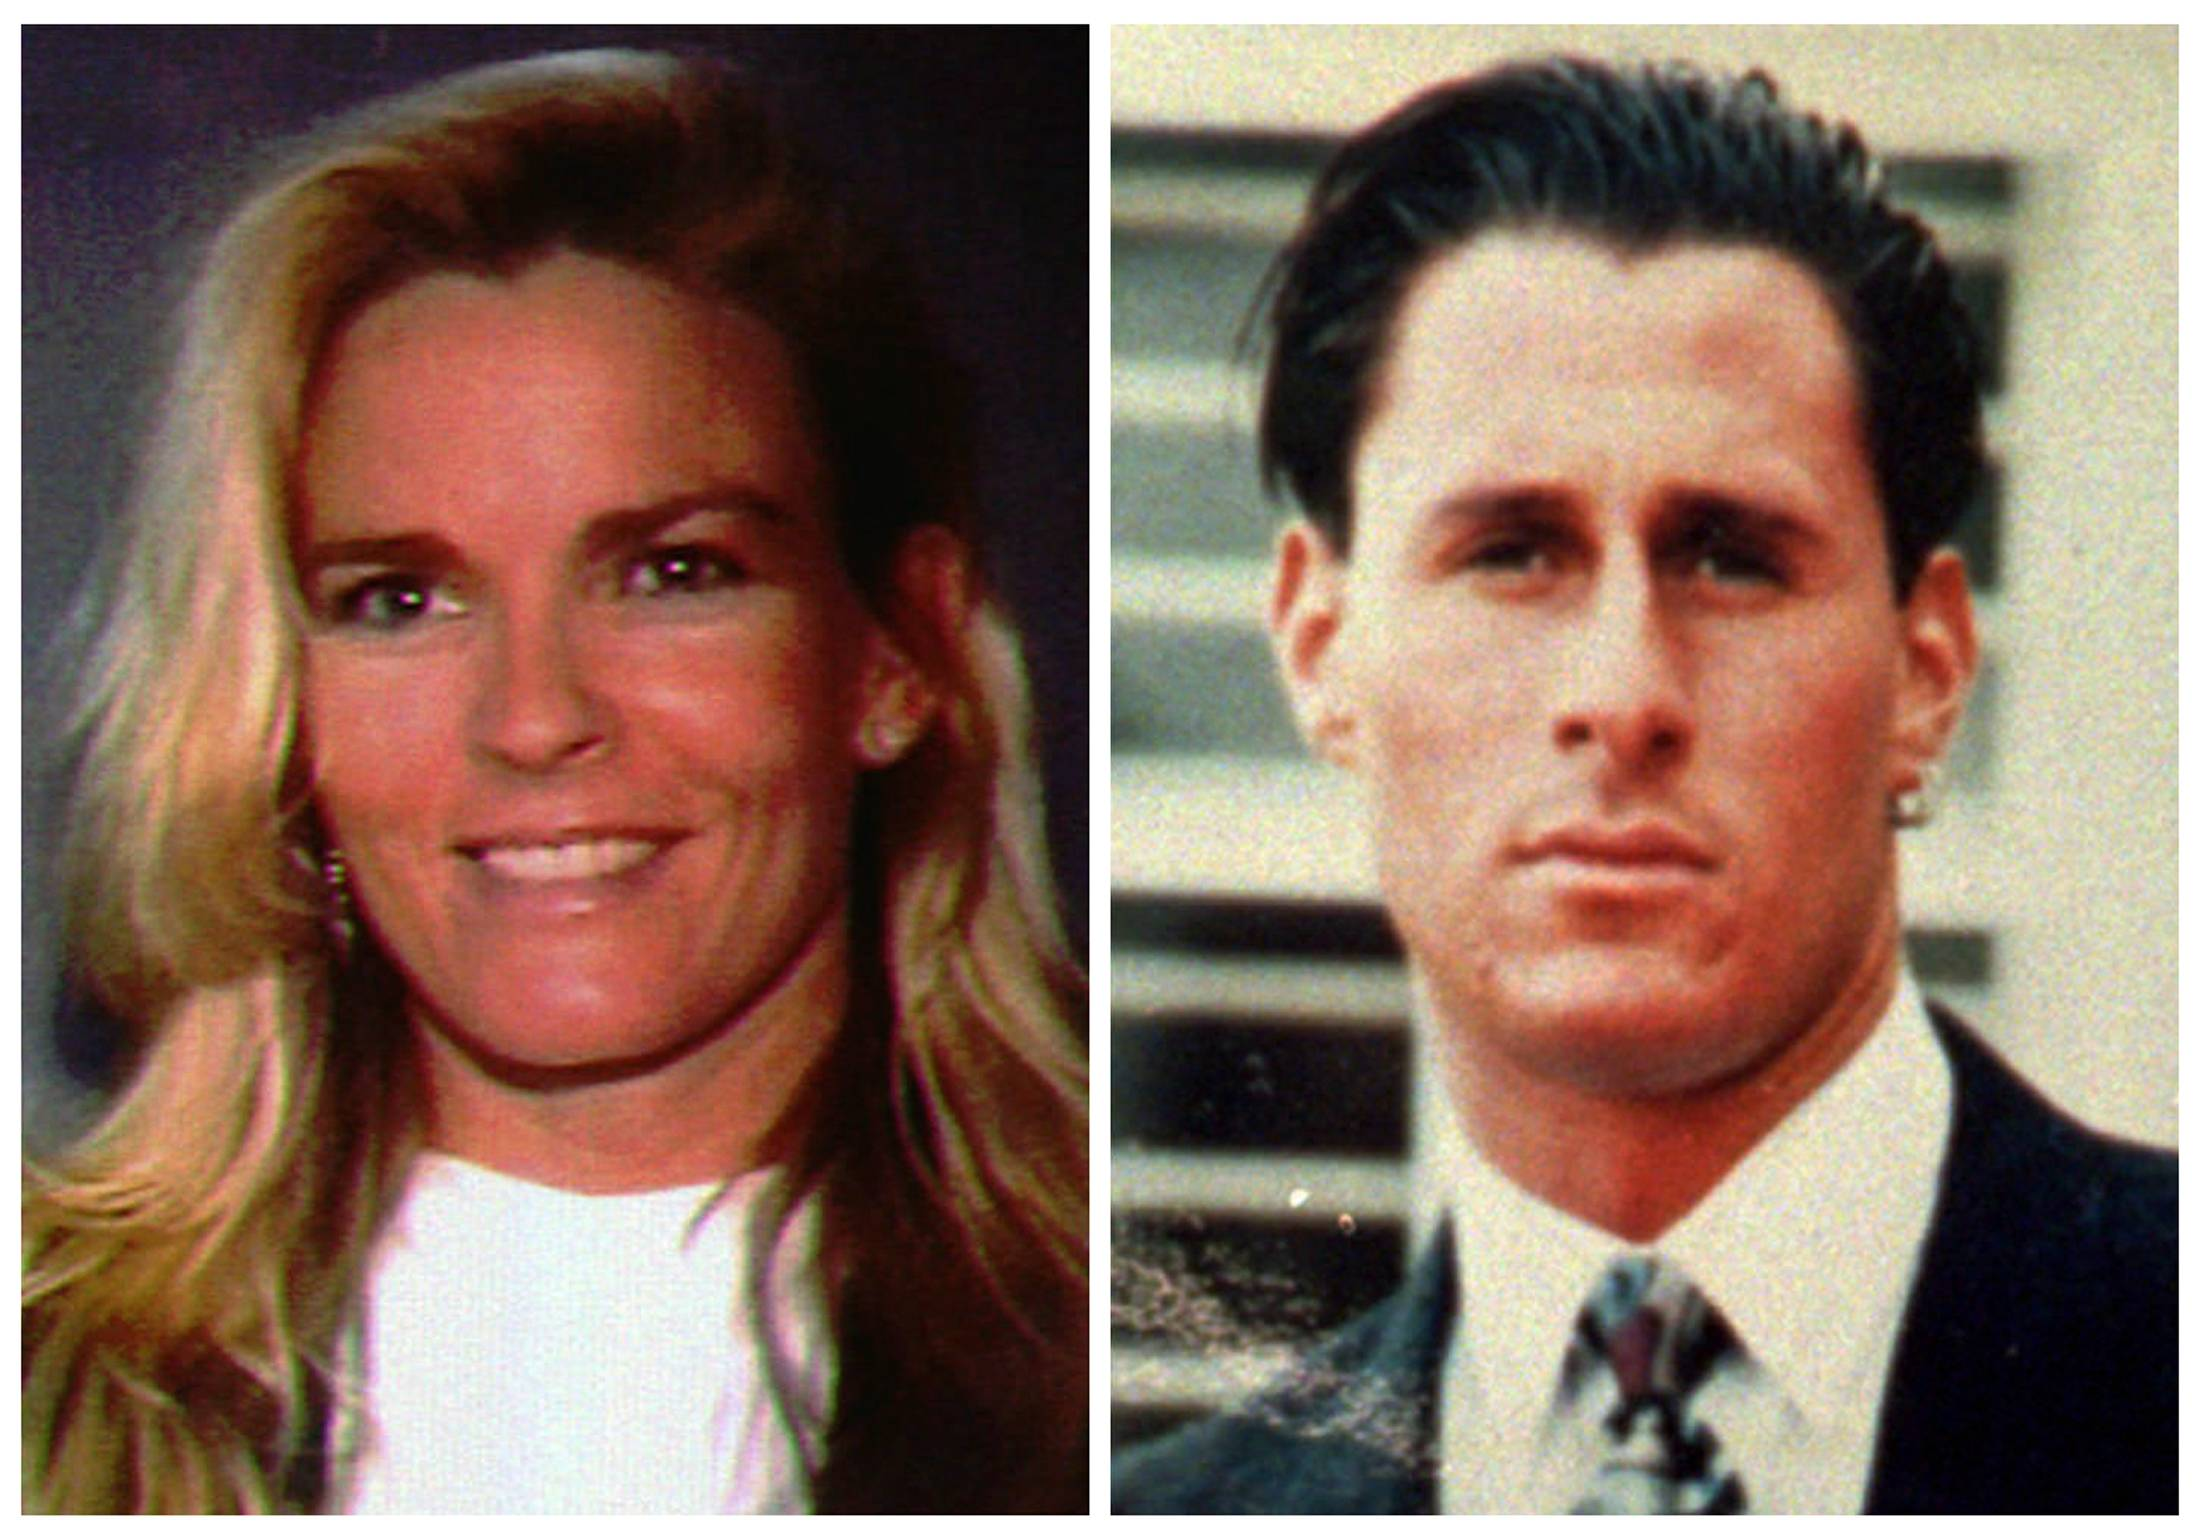 Nicole Brown Simpson and Ron Goldman were murdered June 12, 1994.